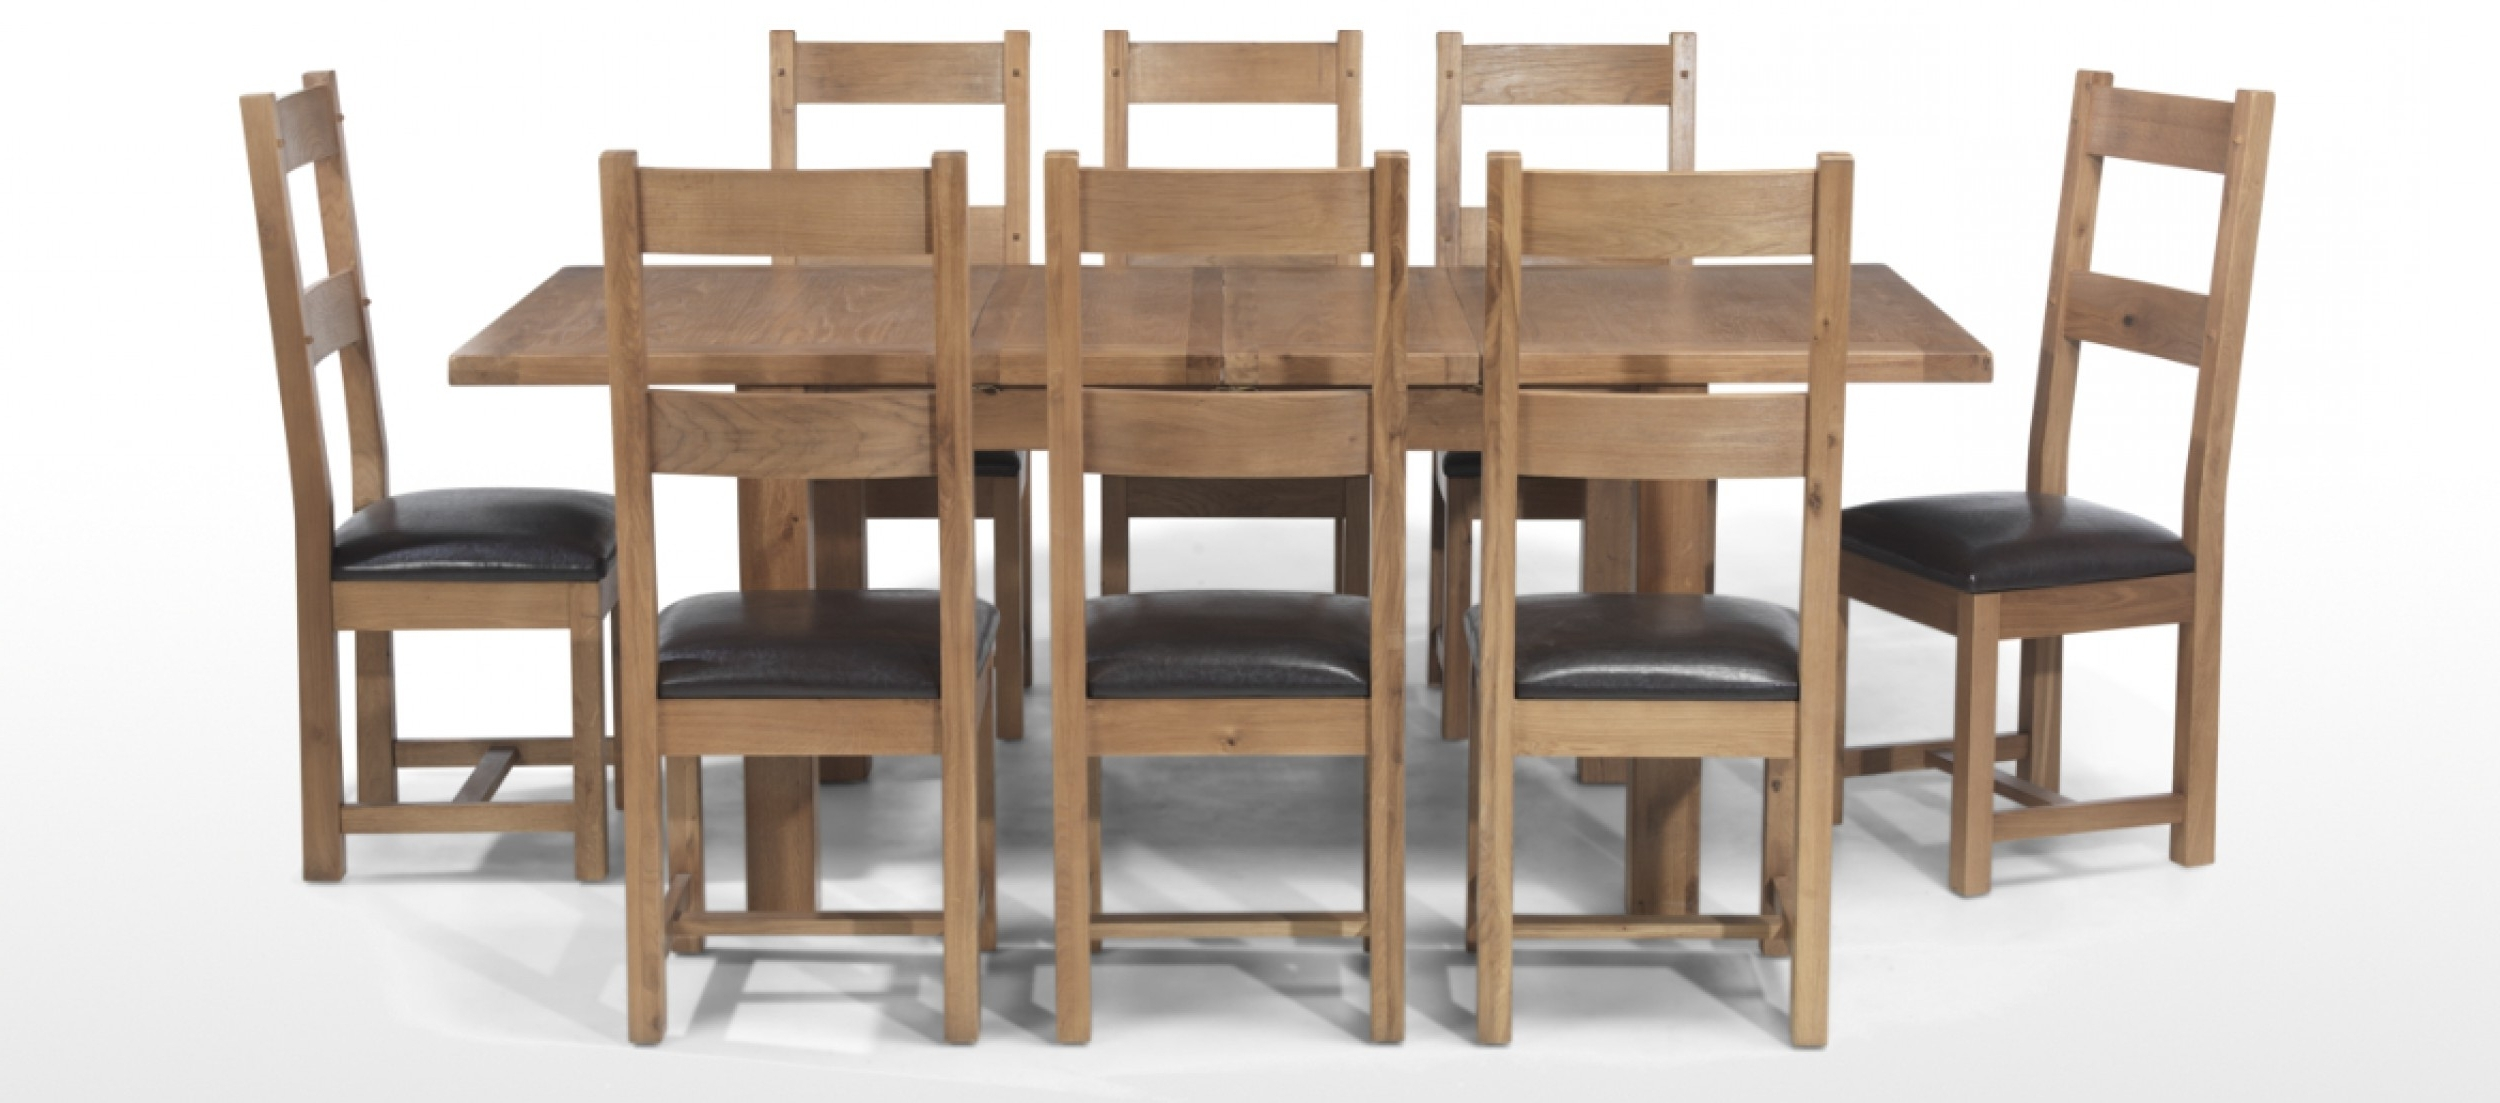 Quercus Pertaining To Extendable Dining Tables With 8 Seats (View 11 of 25)